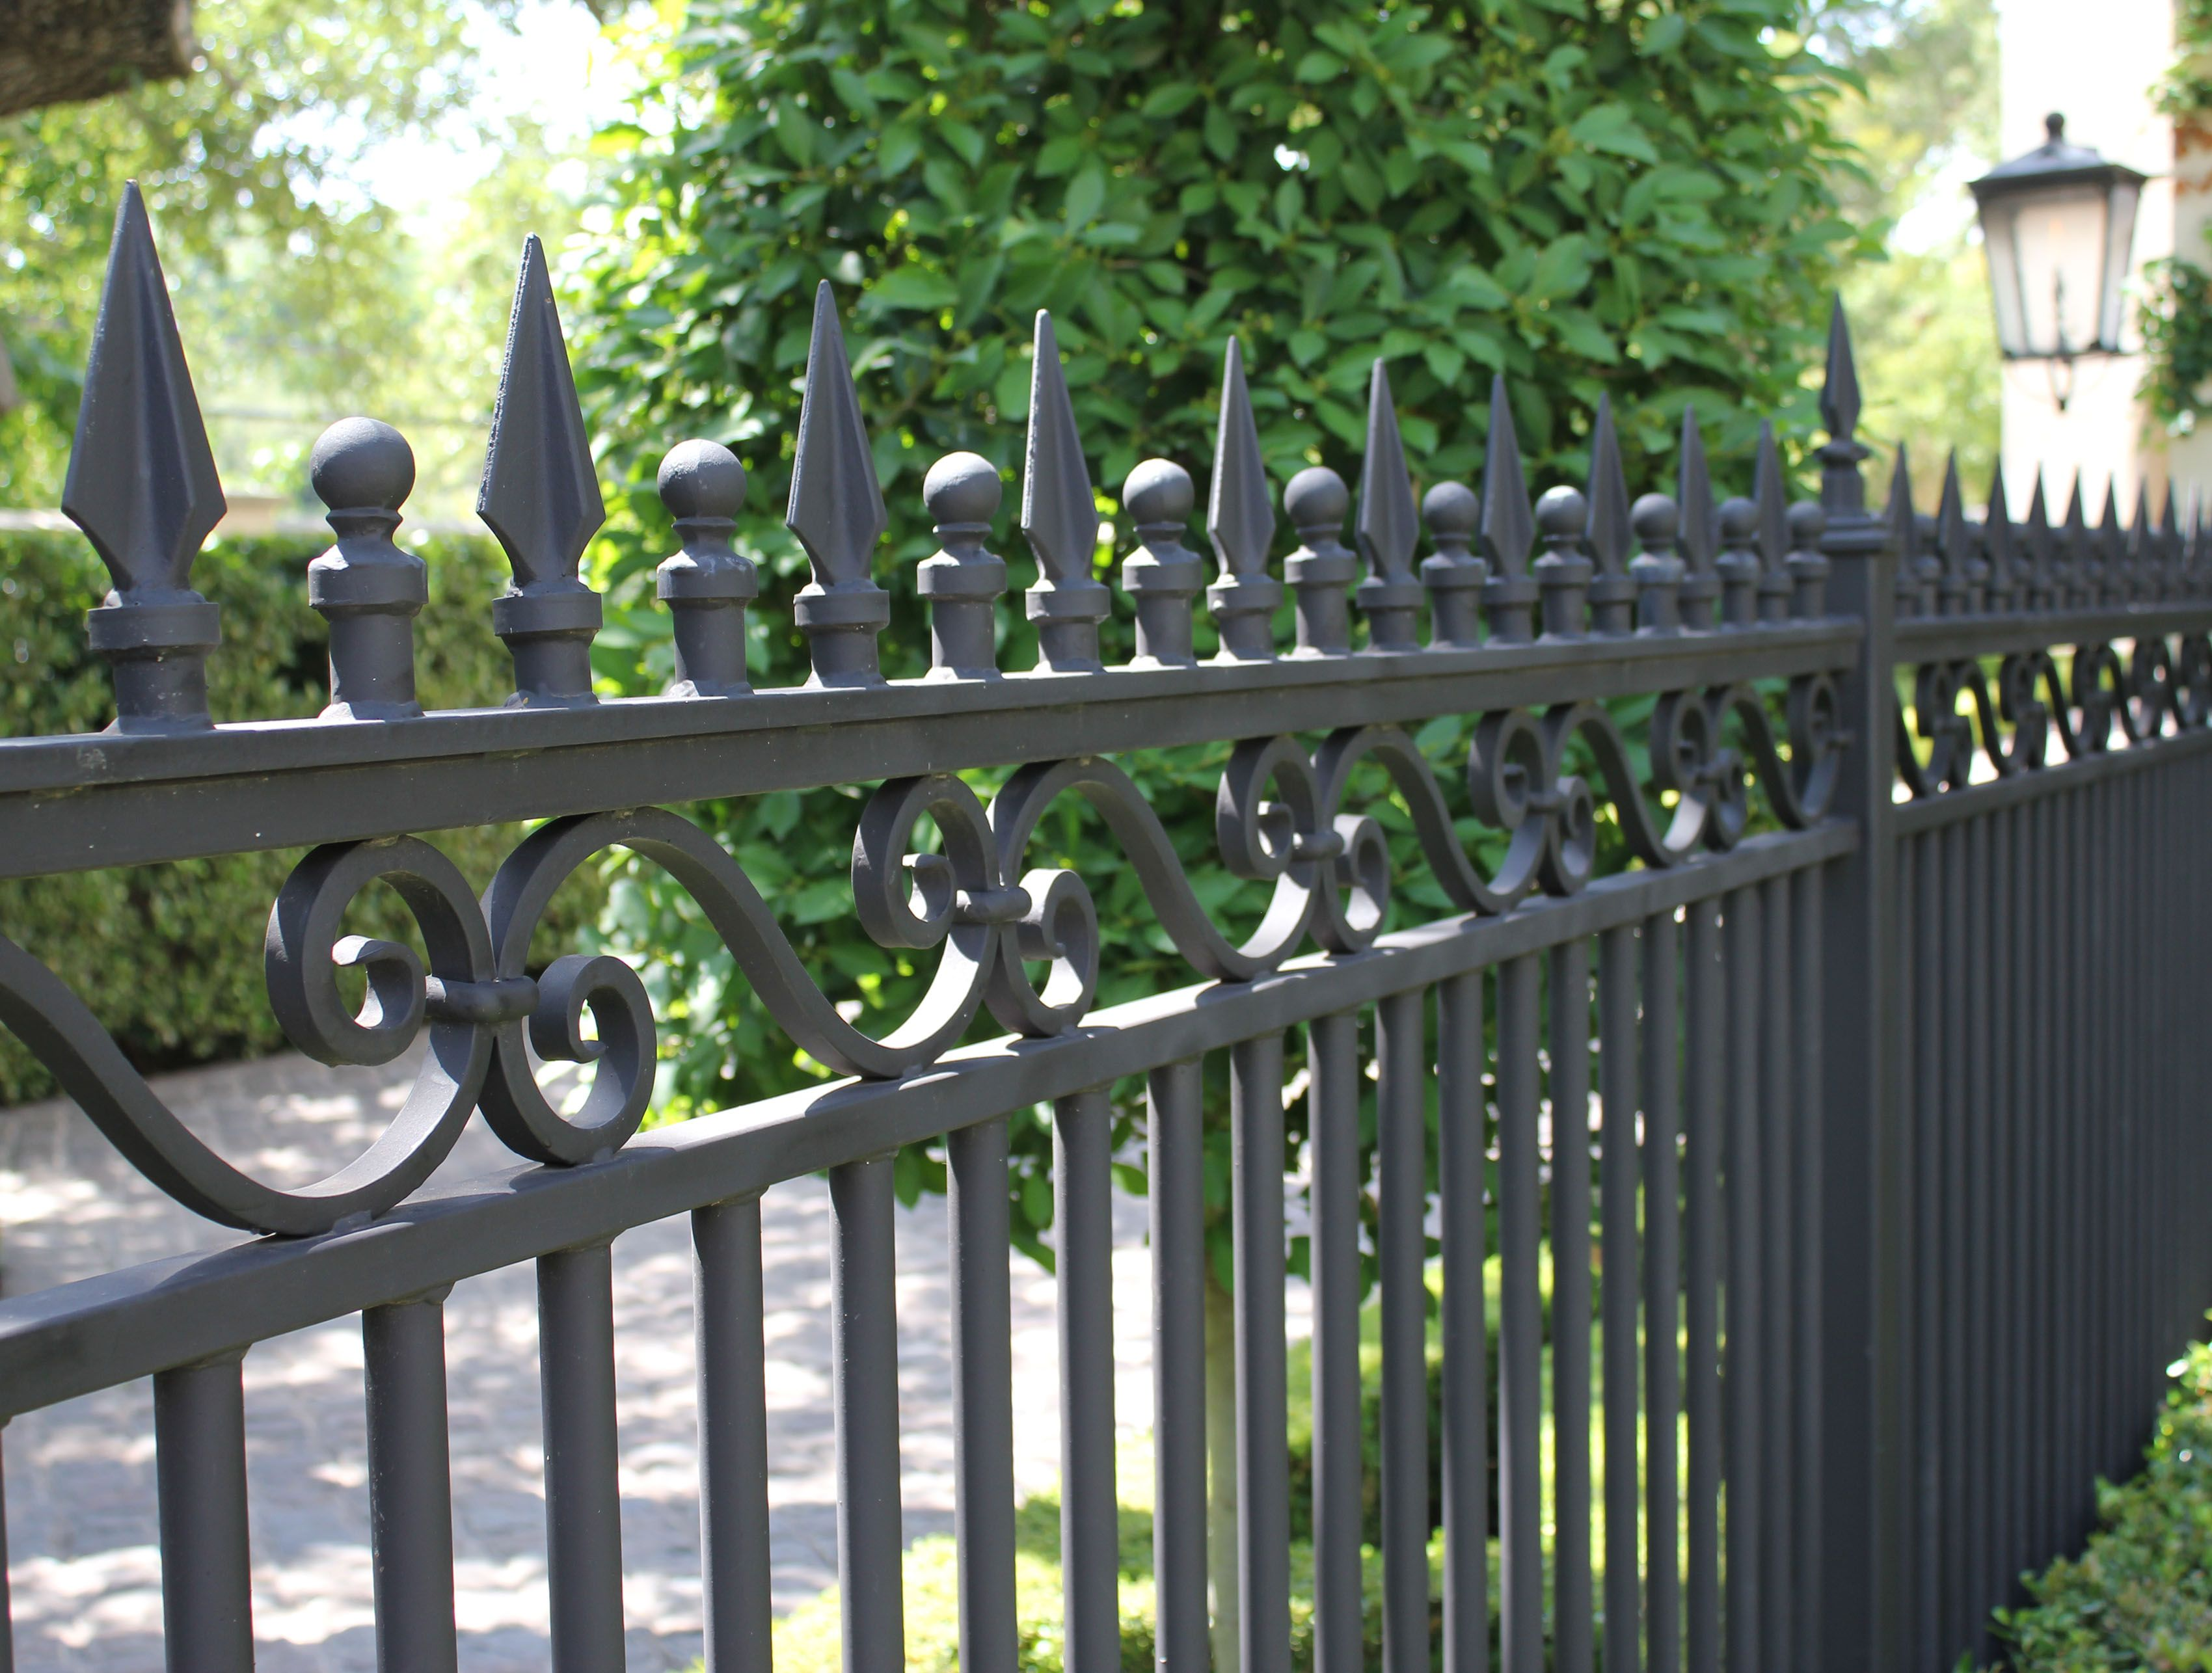 Wrought Iron Fencing With Spires Balls Round Pickets Harold Leidner Co Fence Outdoor Outdoor Structures